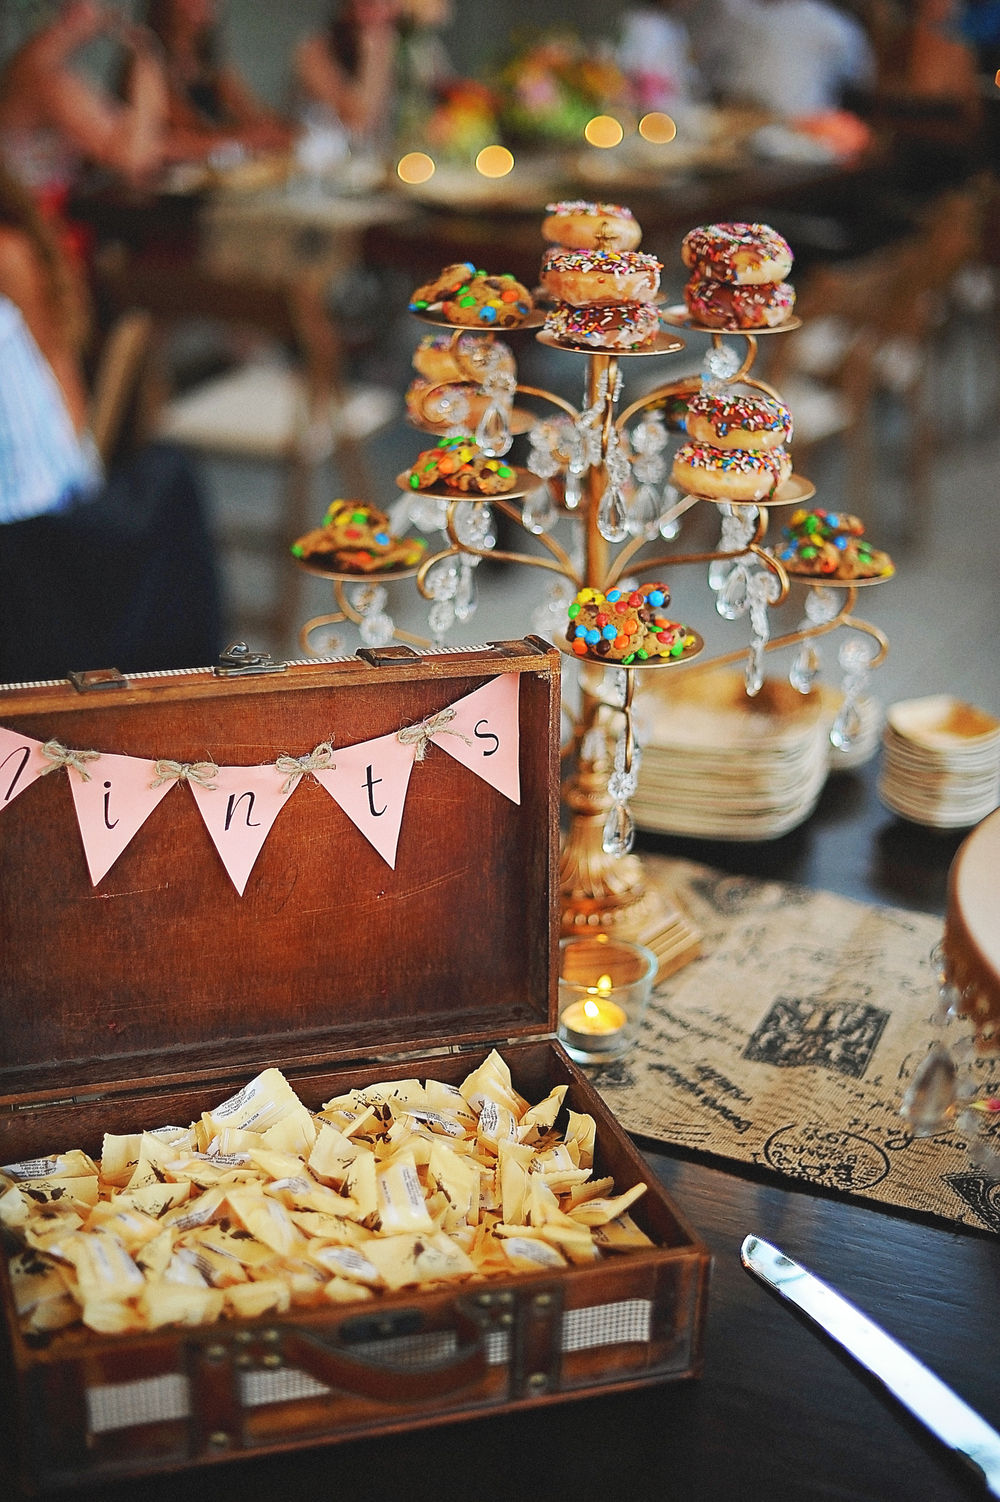 Chandelier Cupcake Stand with Donuts